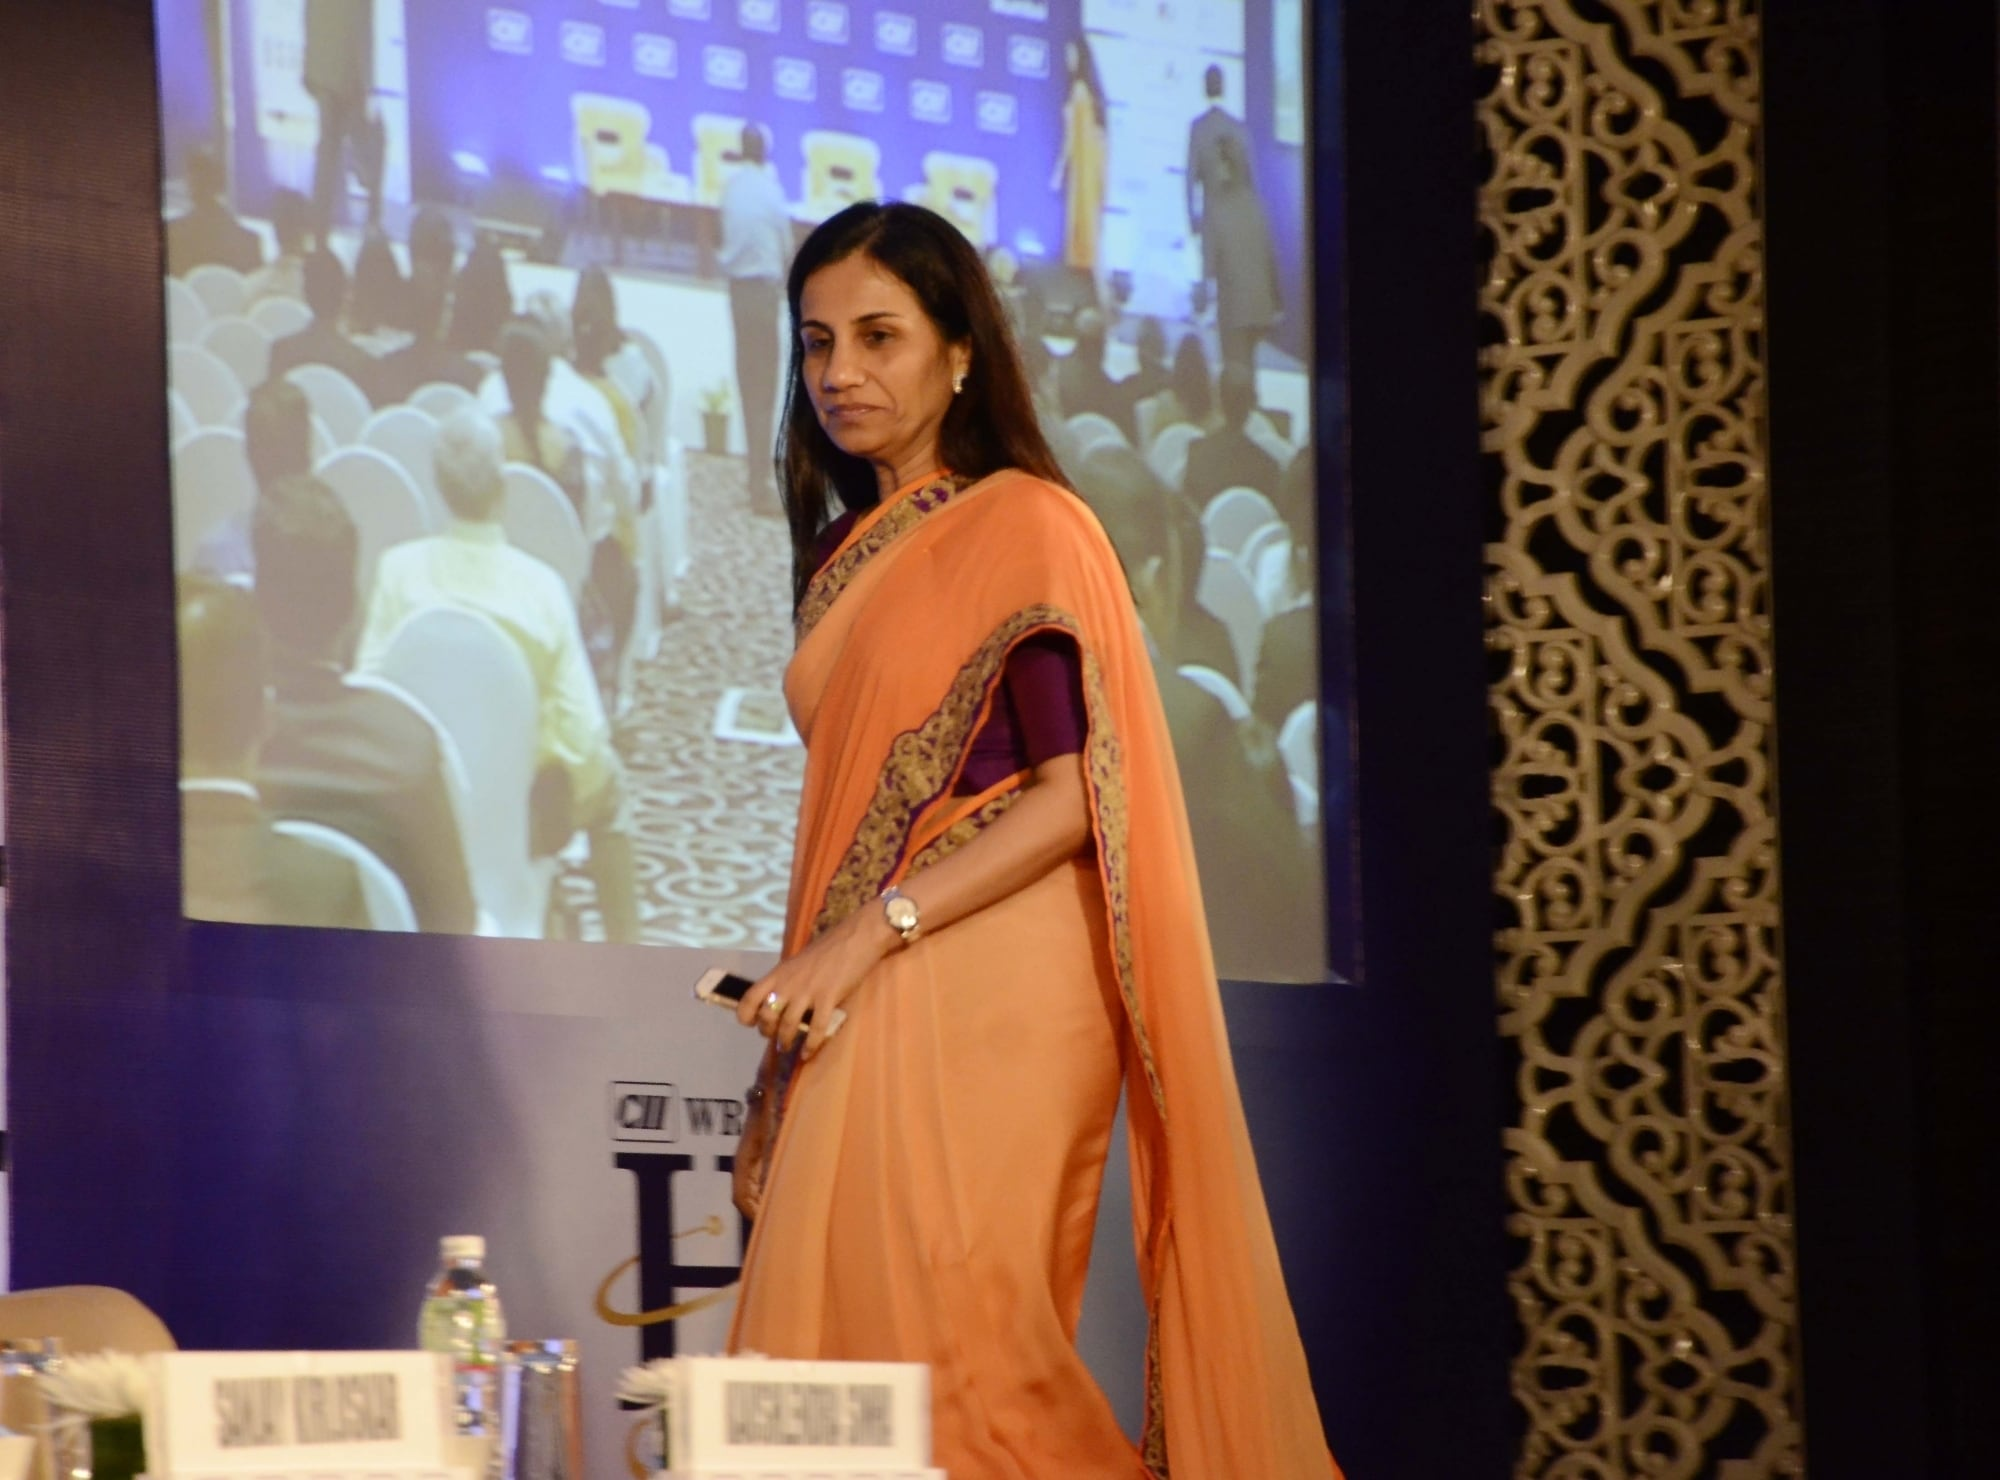 However, in October, Chanda Kochhar resigned. Kochhar has maintained that she had no information about her husband's business dealings. (Picture credits: IANS).